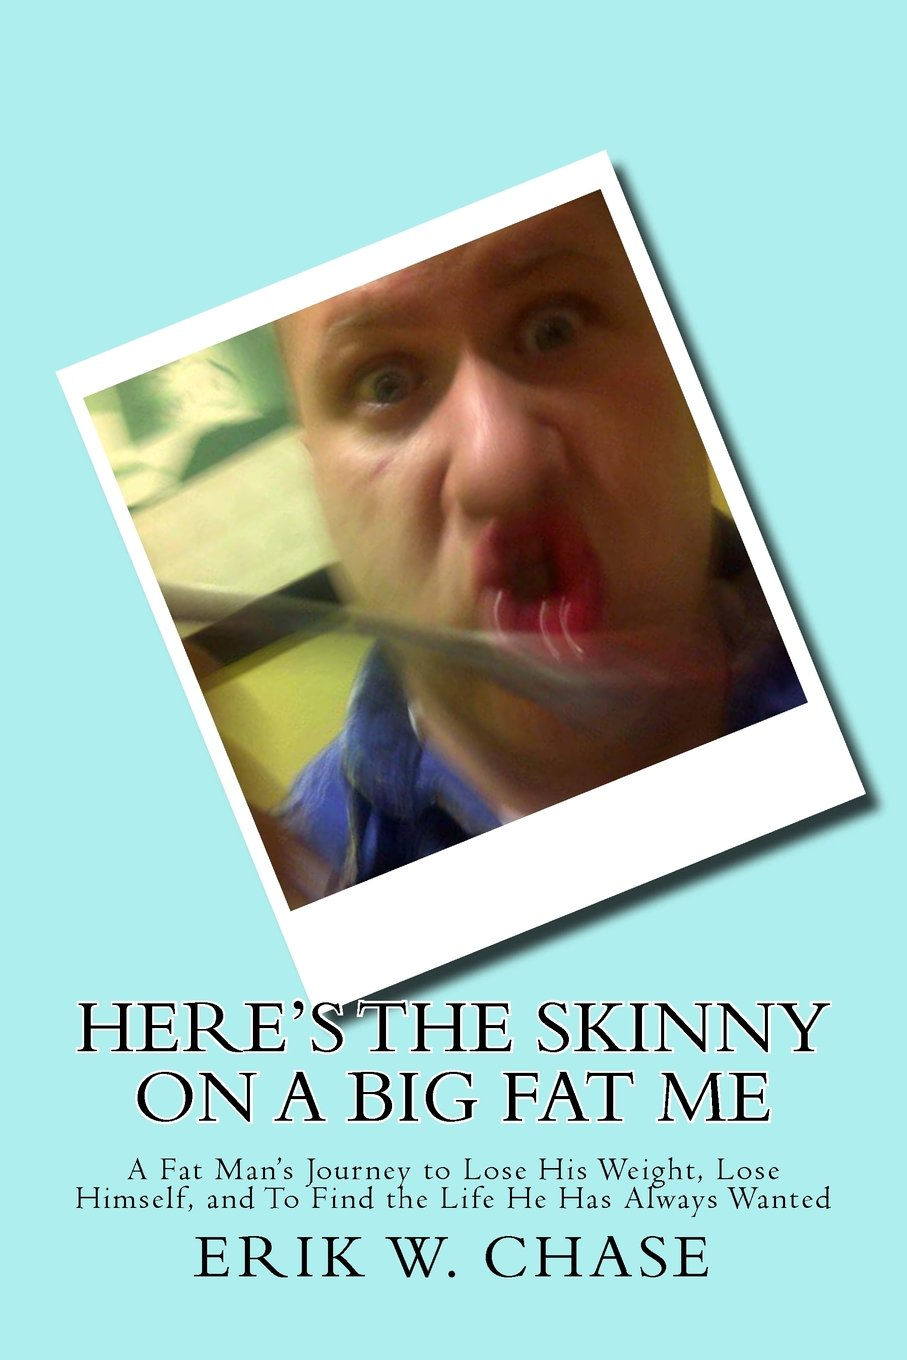 Read Online Here's the Skinny On a Big Fat Me: A Fat Man's Journey to Lose His Weight, Lose Himself, and To Find the Life He Has Always Wanted pdf epub